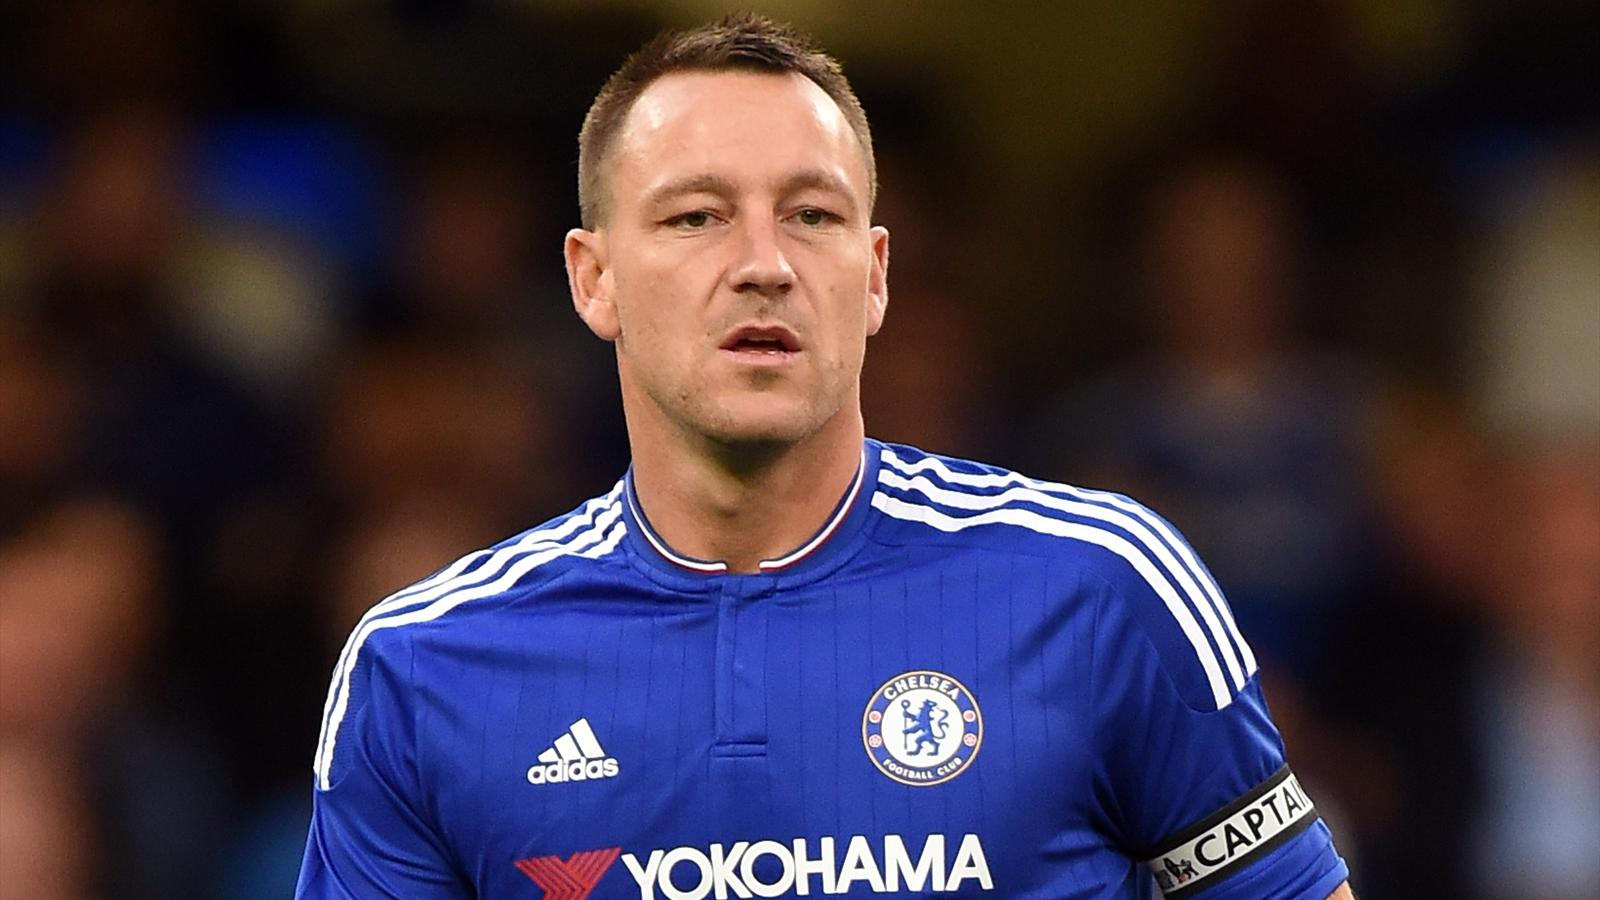 Chelsea captain John Terry left out by Jose Mourinho when fully